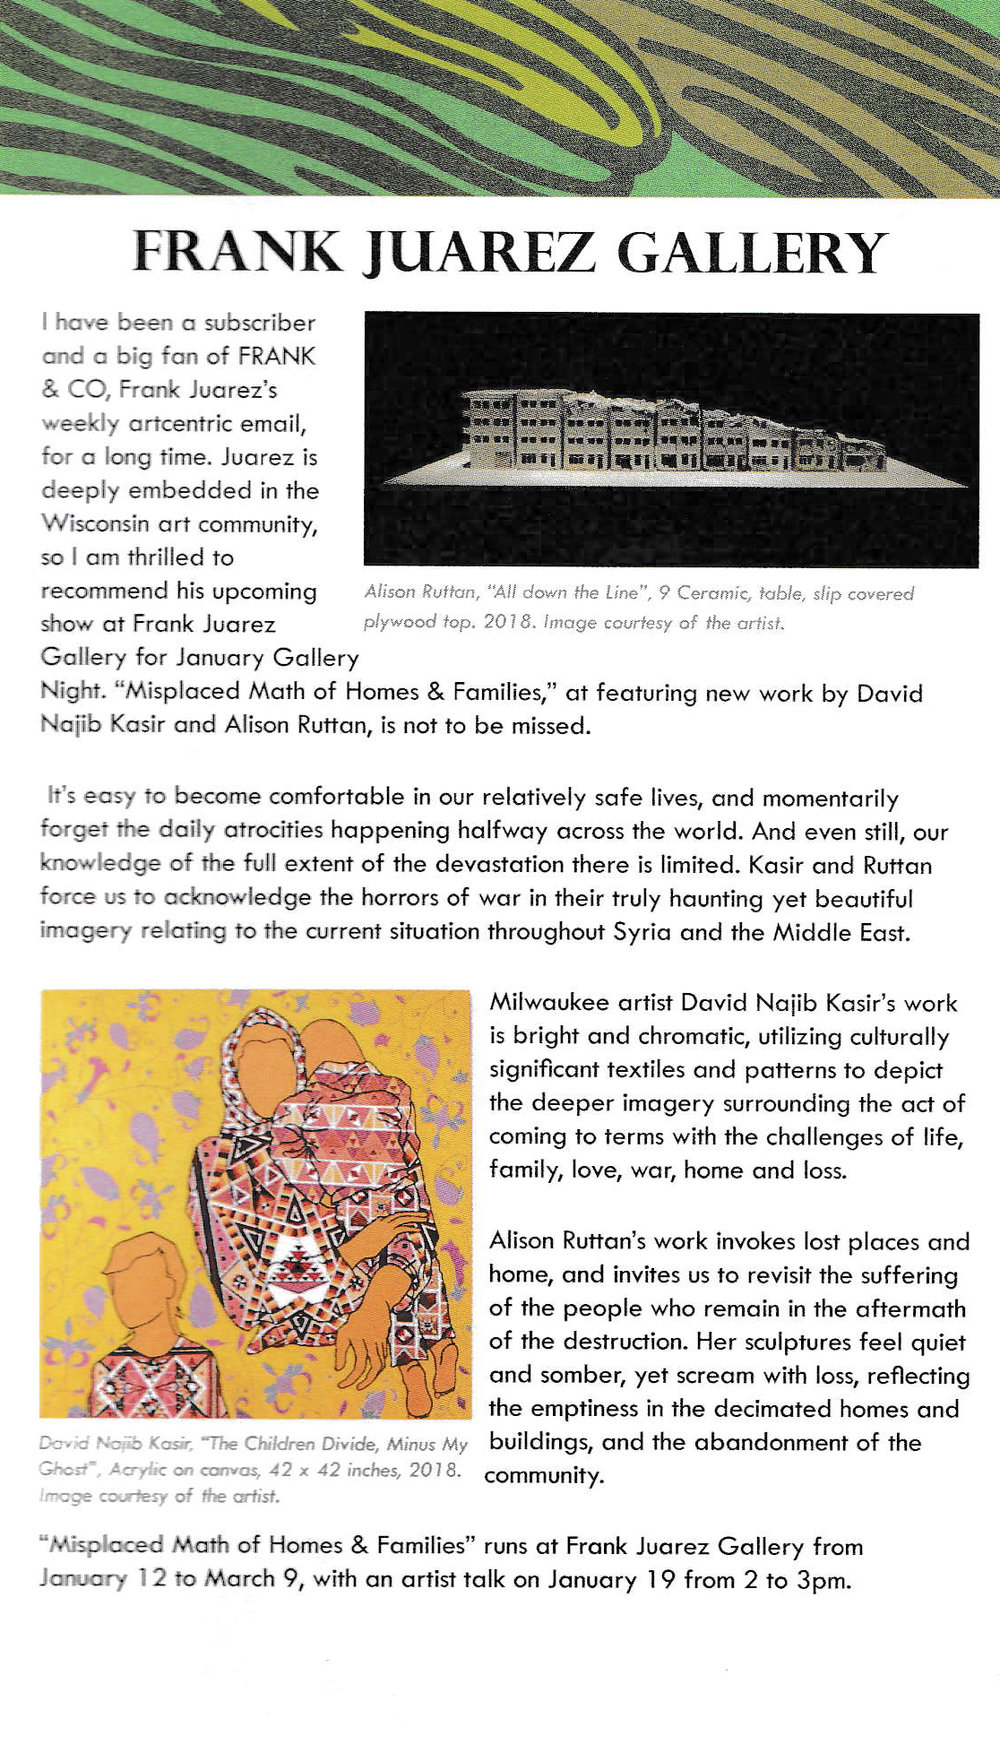 Jan2019_GalleryNight_review_Sara_Mulloy copy.jpg